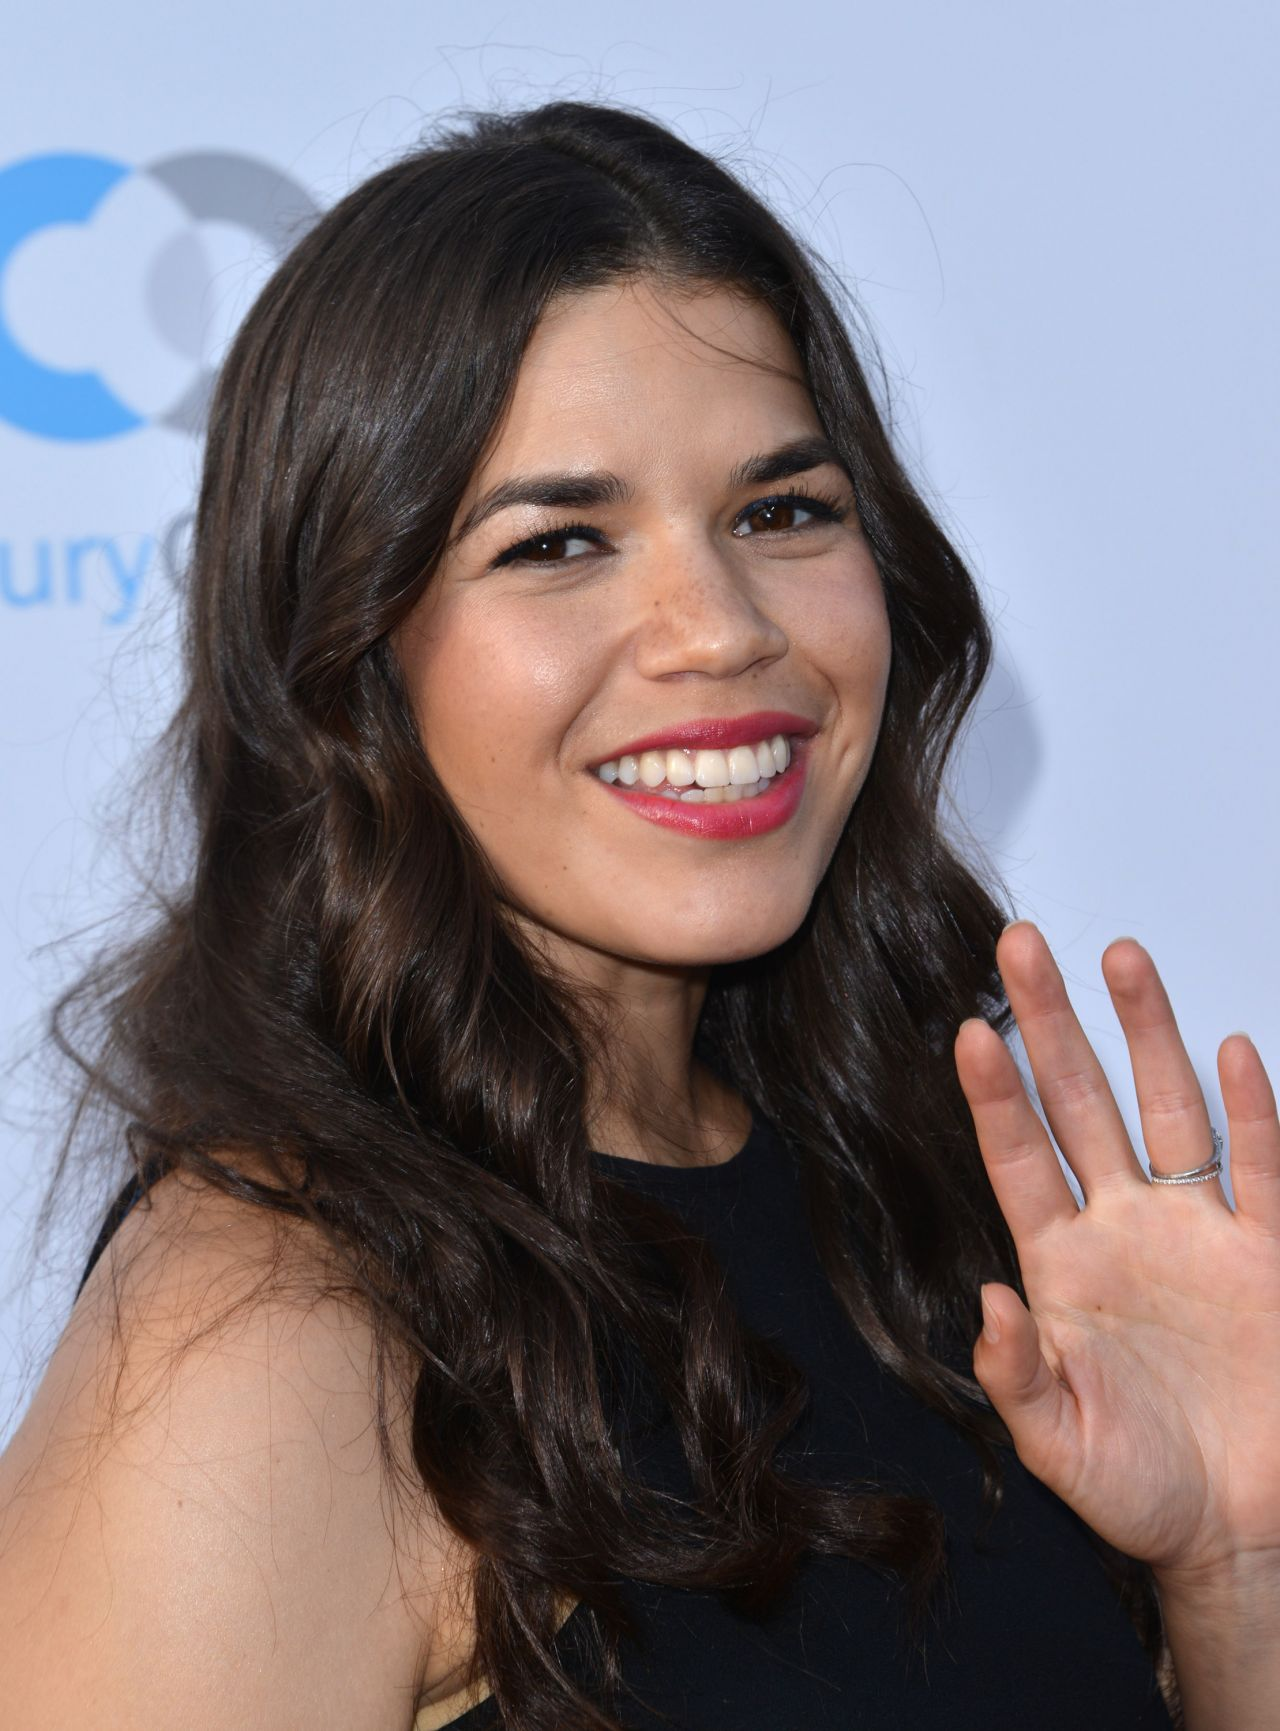 american crew hairstyles : America Ferrera ? Stand For Kids Gala in Los Angeles 6/18/2016